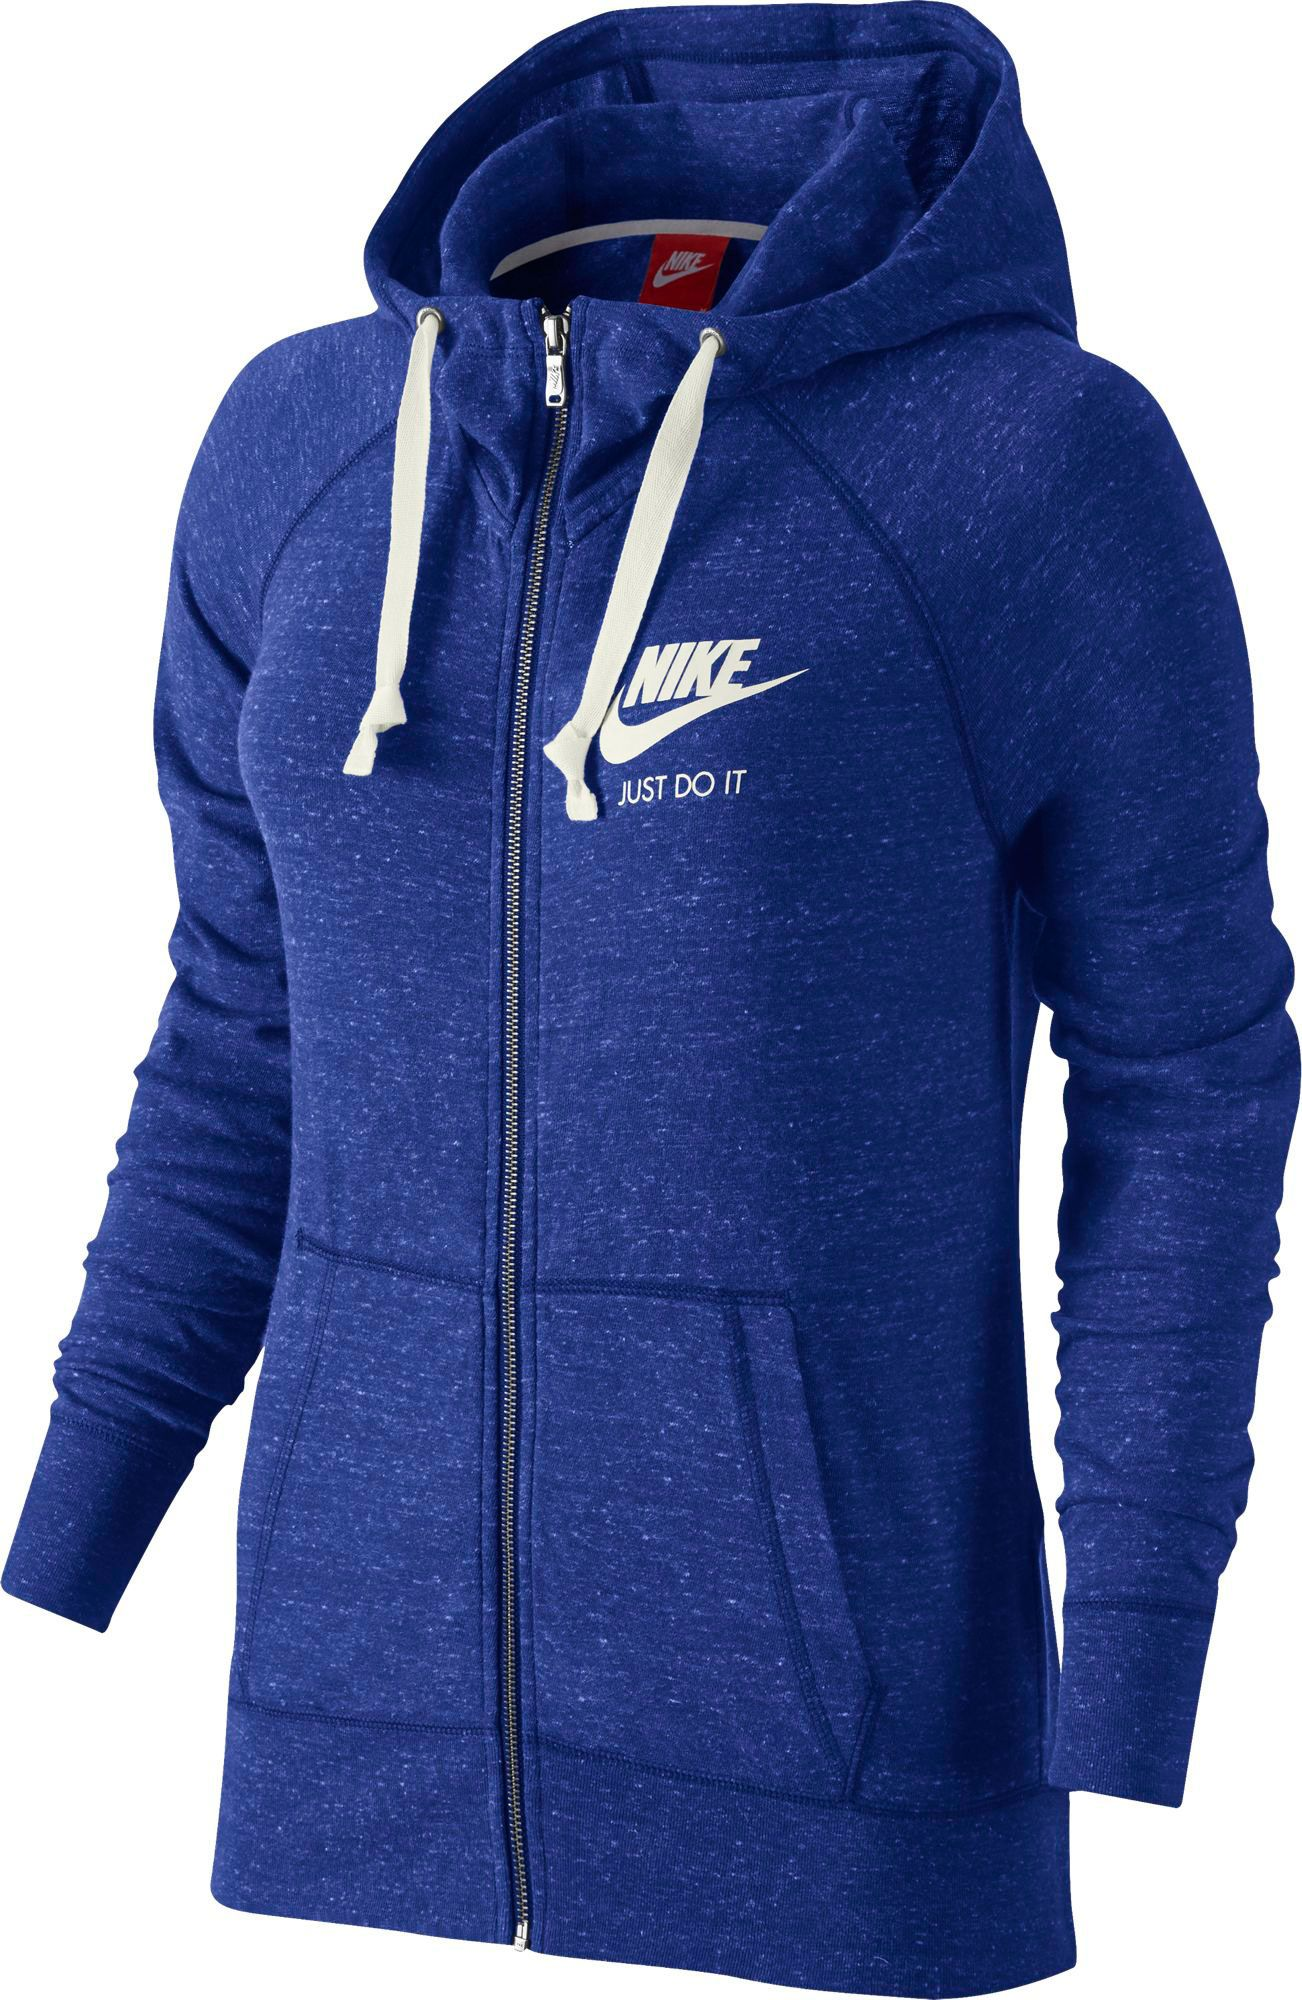 Nike Women's Gym Vintage Full Zip Hoodie| DICK'S Sporting Goods